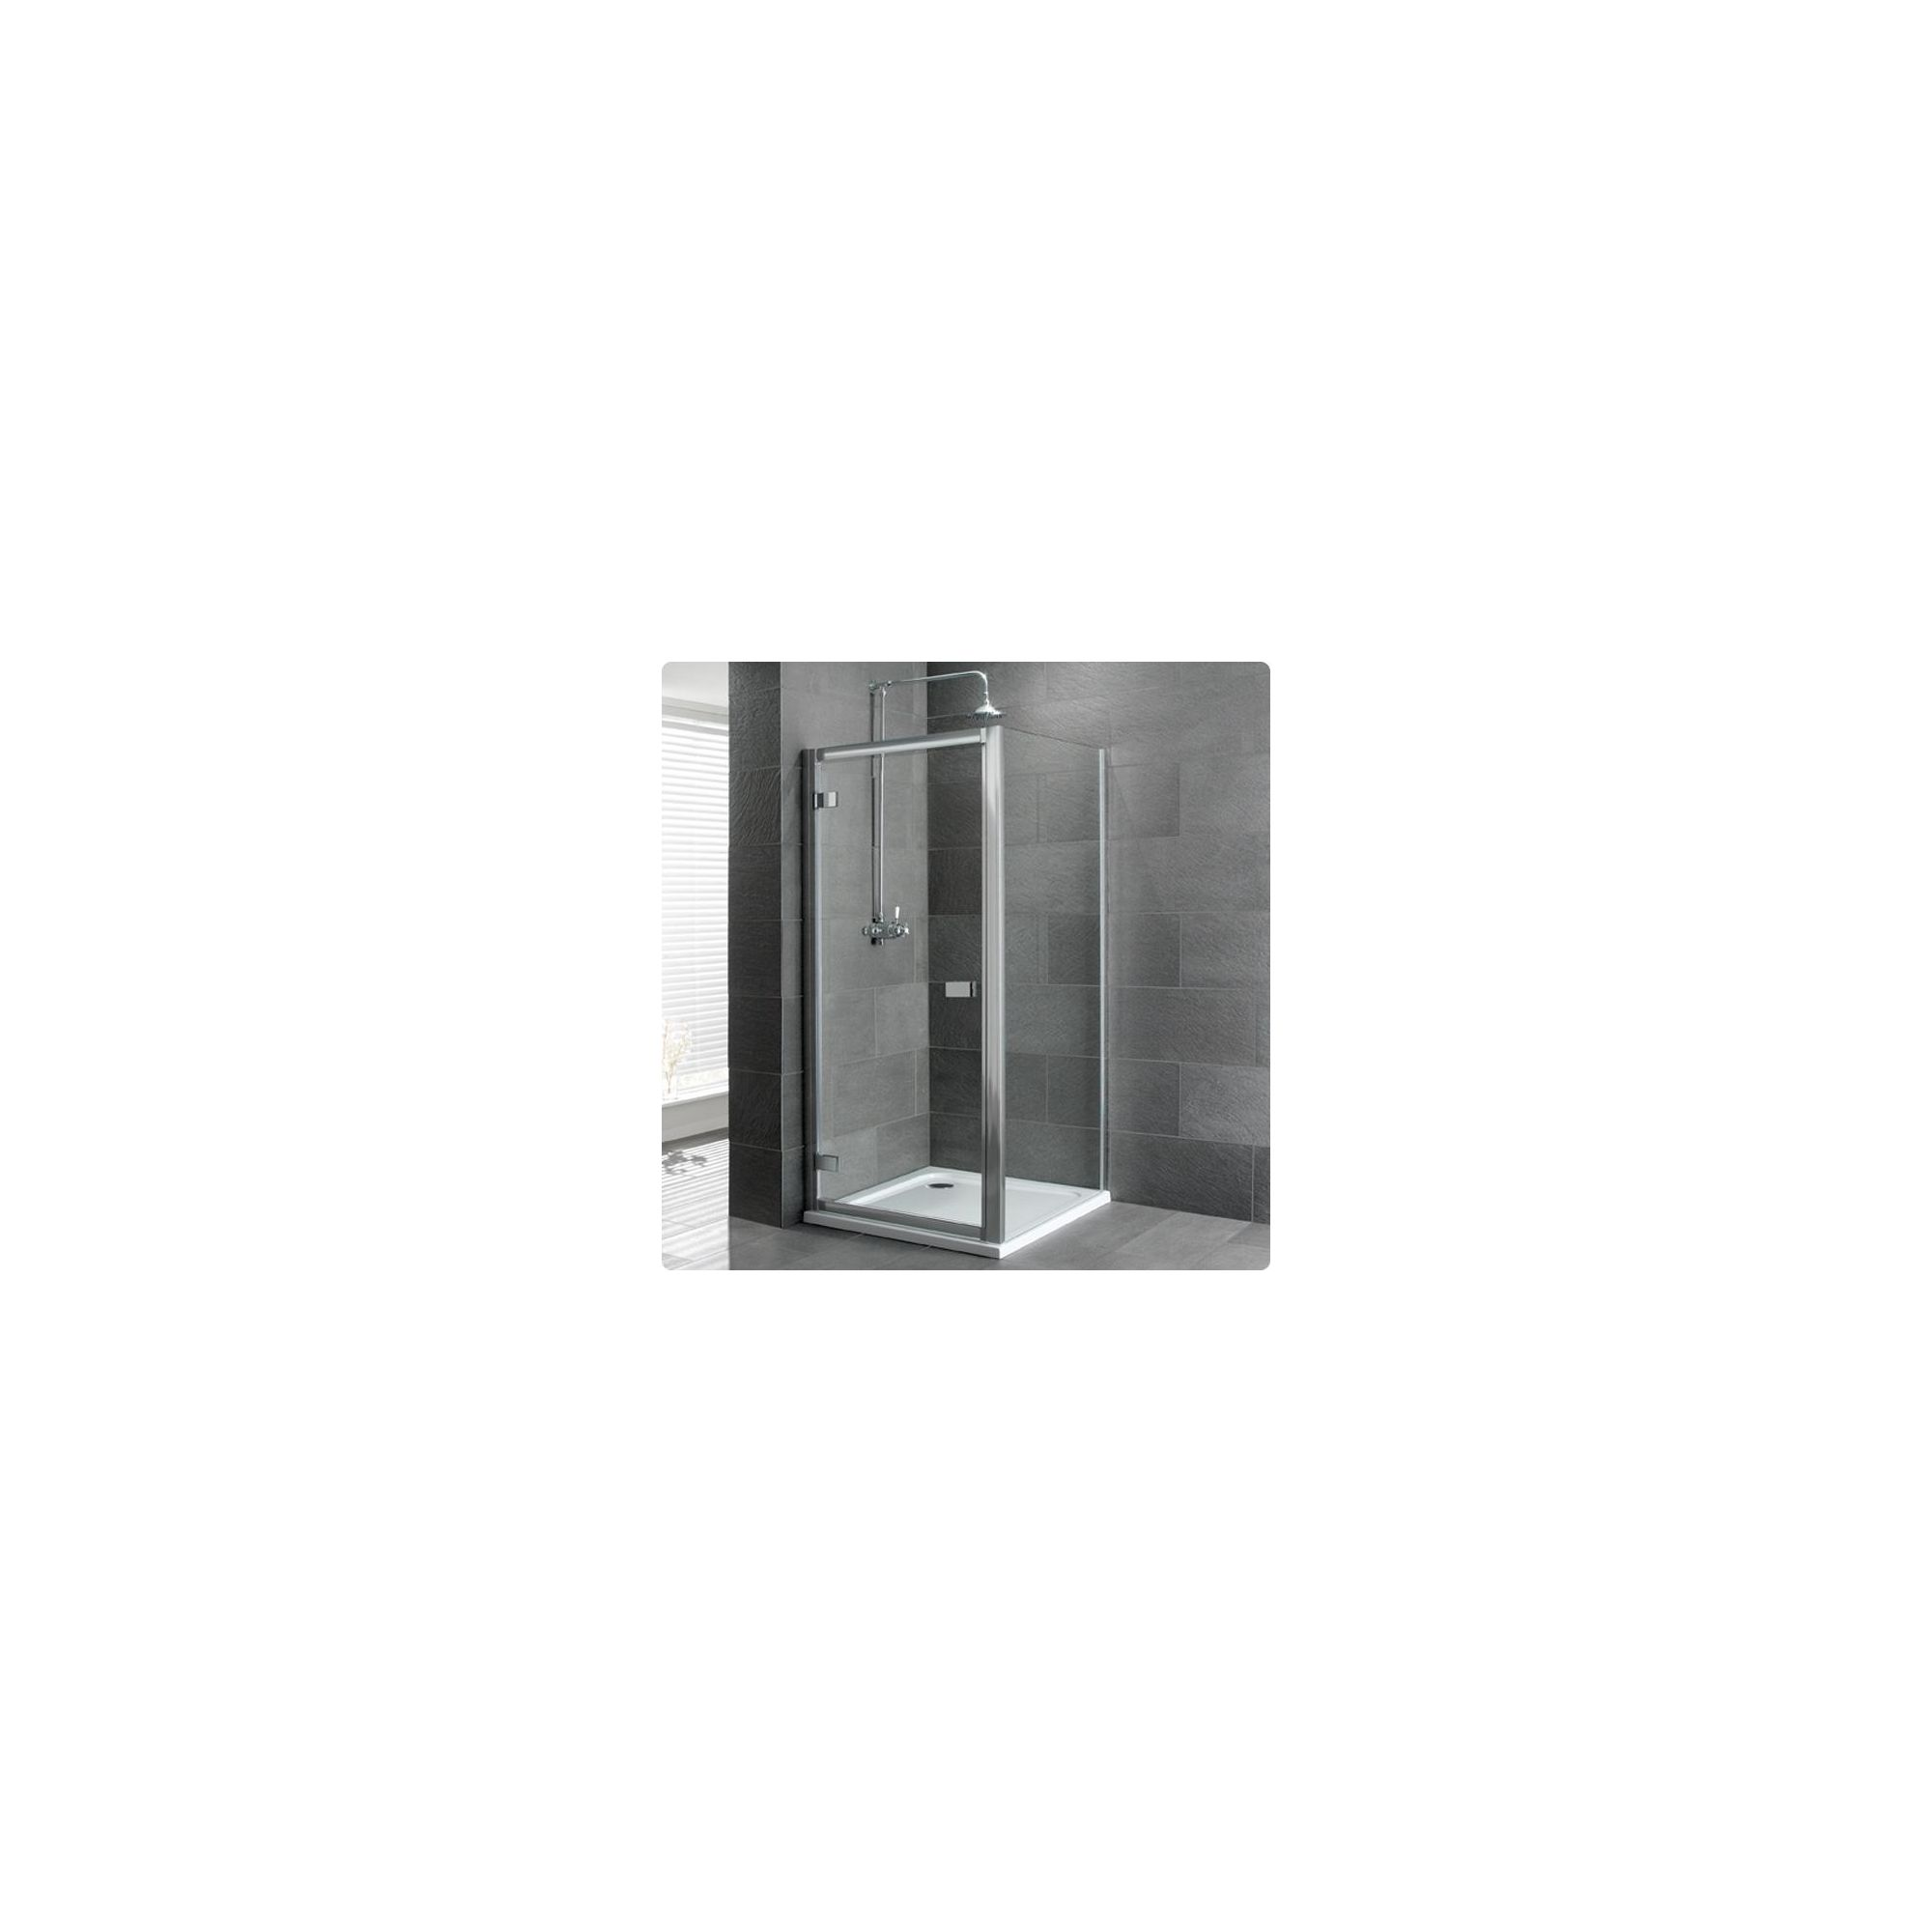 Duchy Select Silver Hinged Door Shower Enclosure, 800mm x 800mm, Standard Tray, 6mm Glass at Tesco Direct